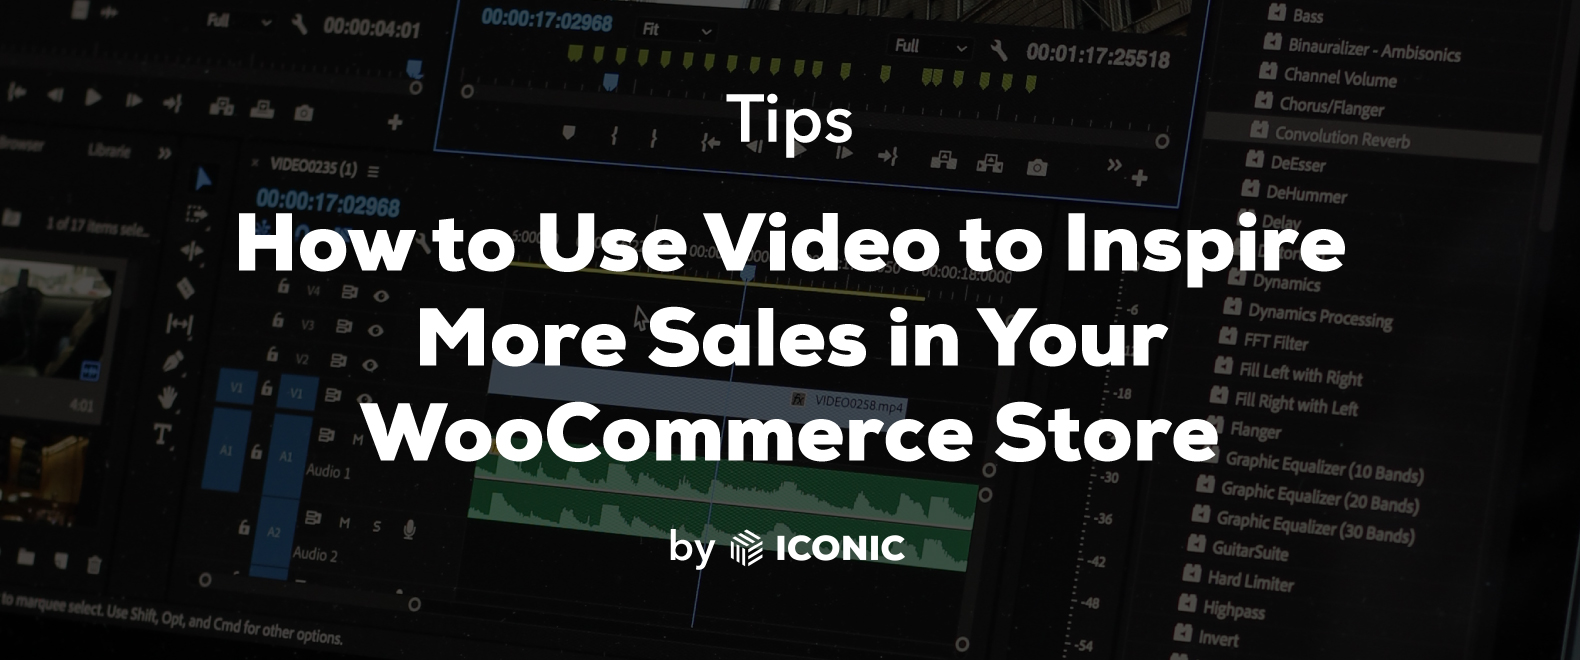 WooCommerce video